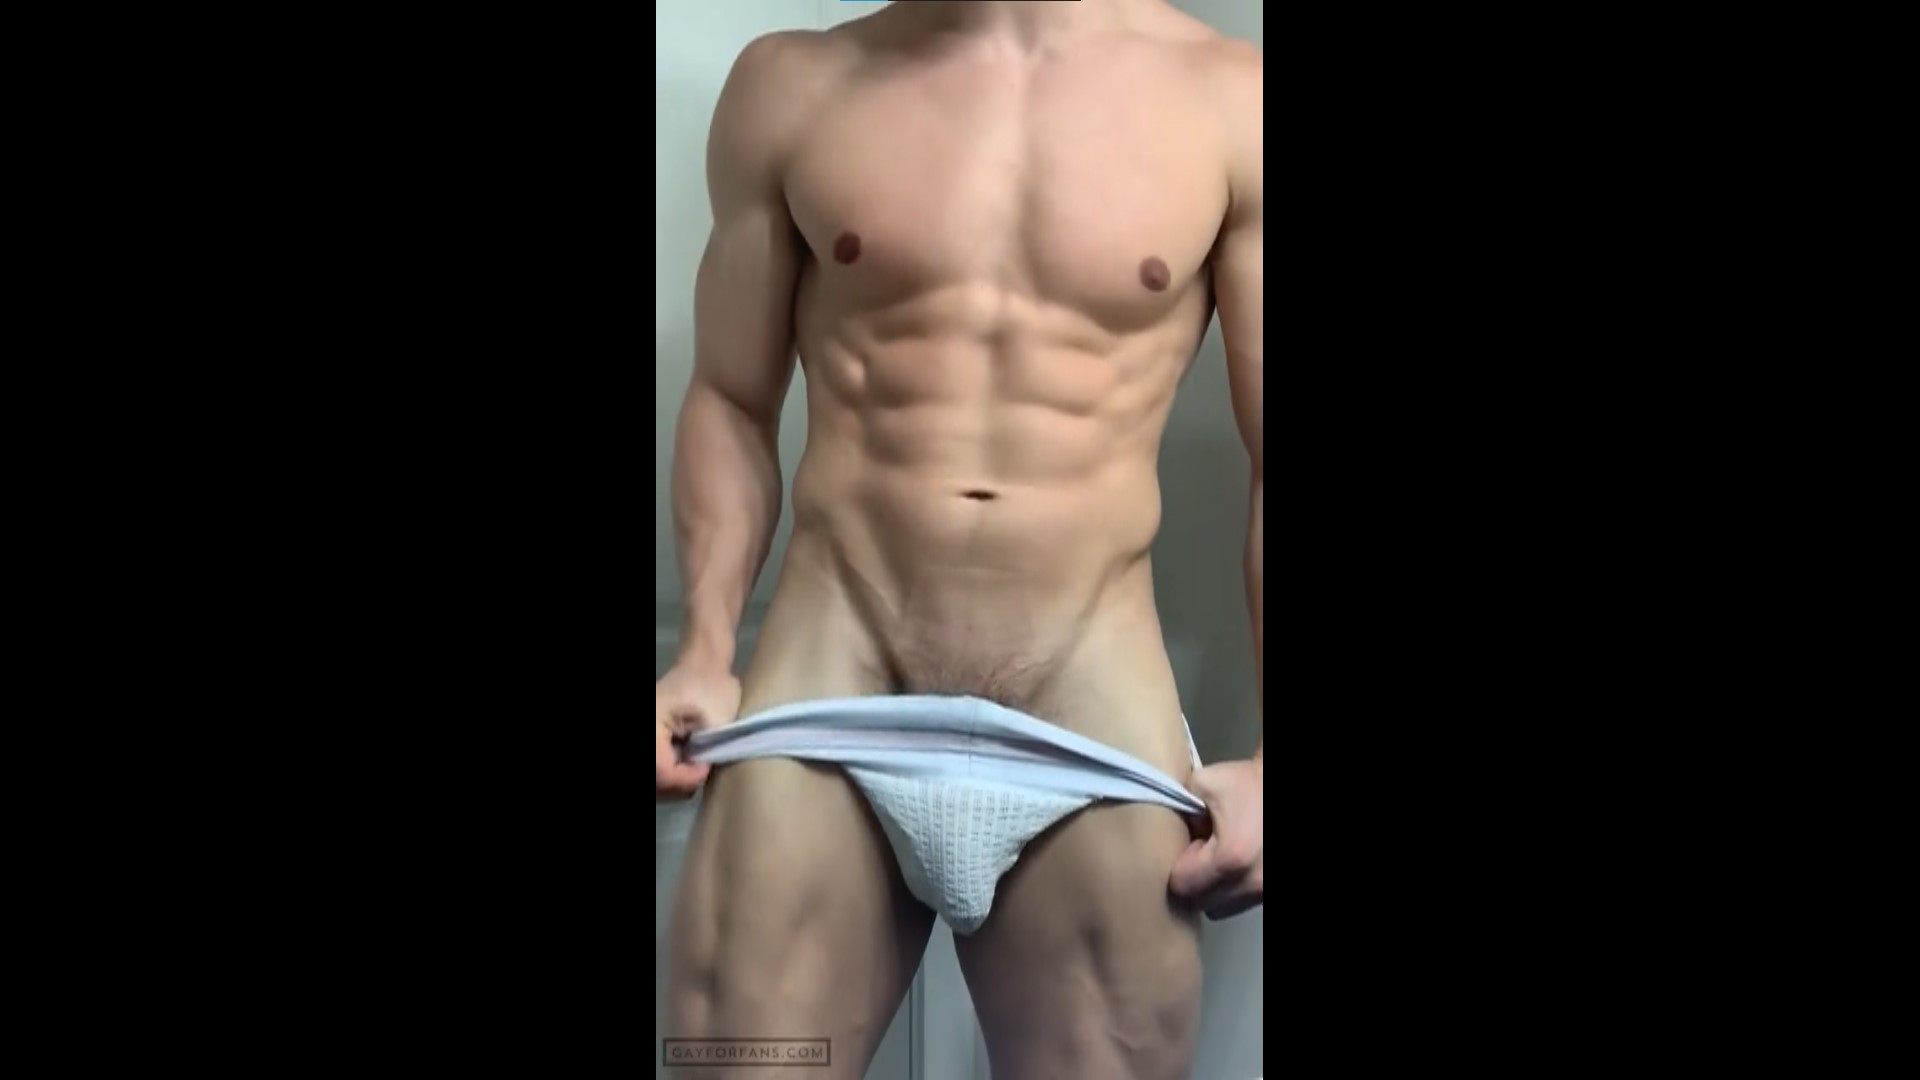 Showing off my body in a jockstrap - ShreddedC